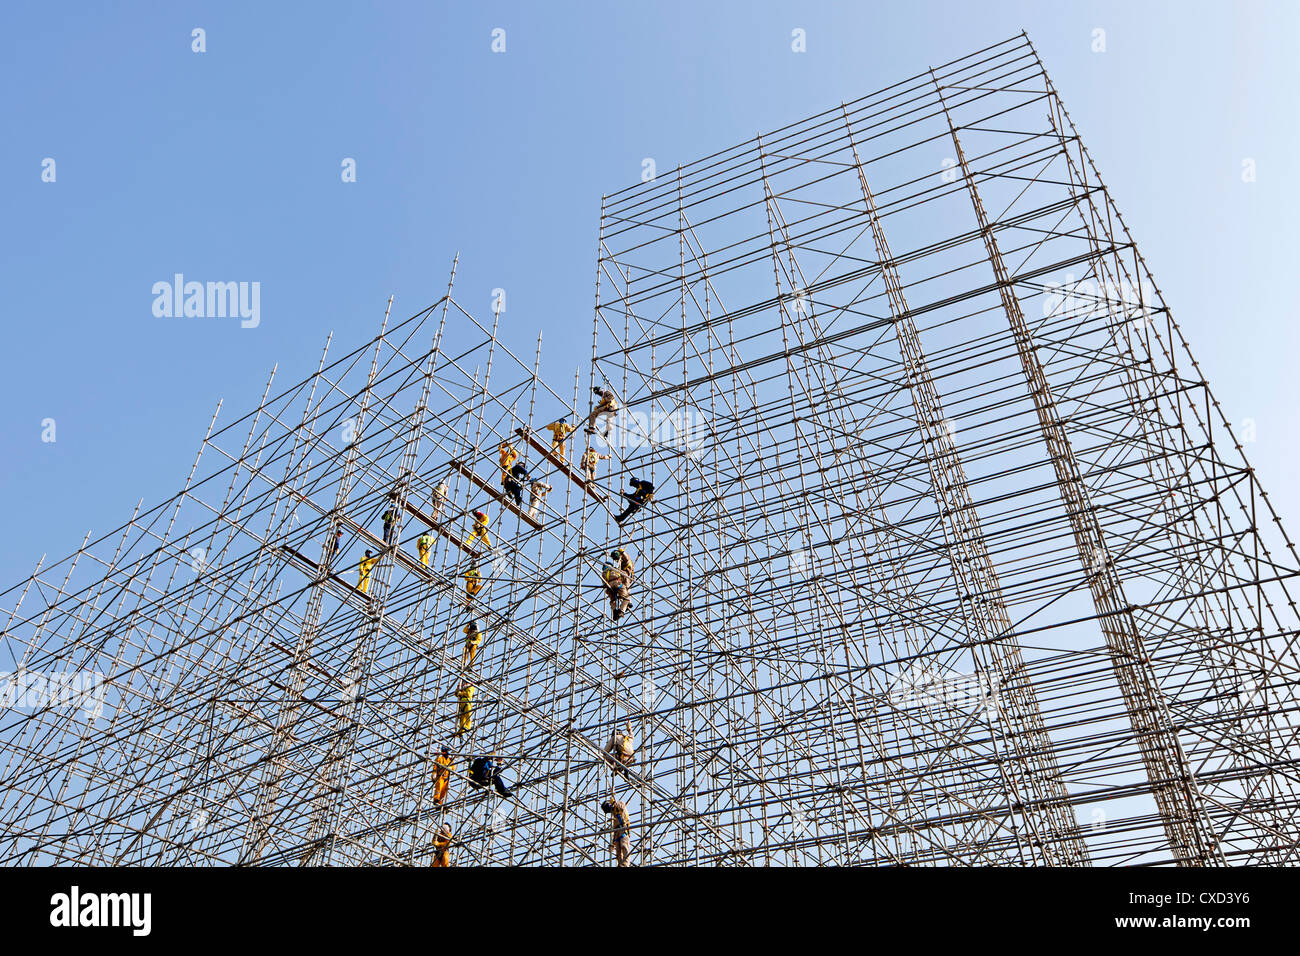 Scaffolding construction being erected in Central Doha, Doha, Qatar, Middle East - Stock Image